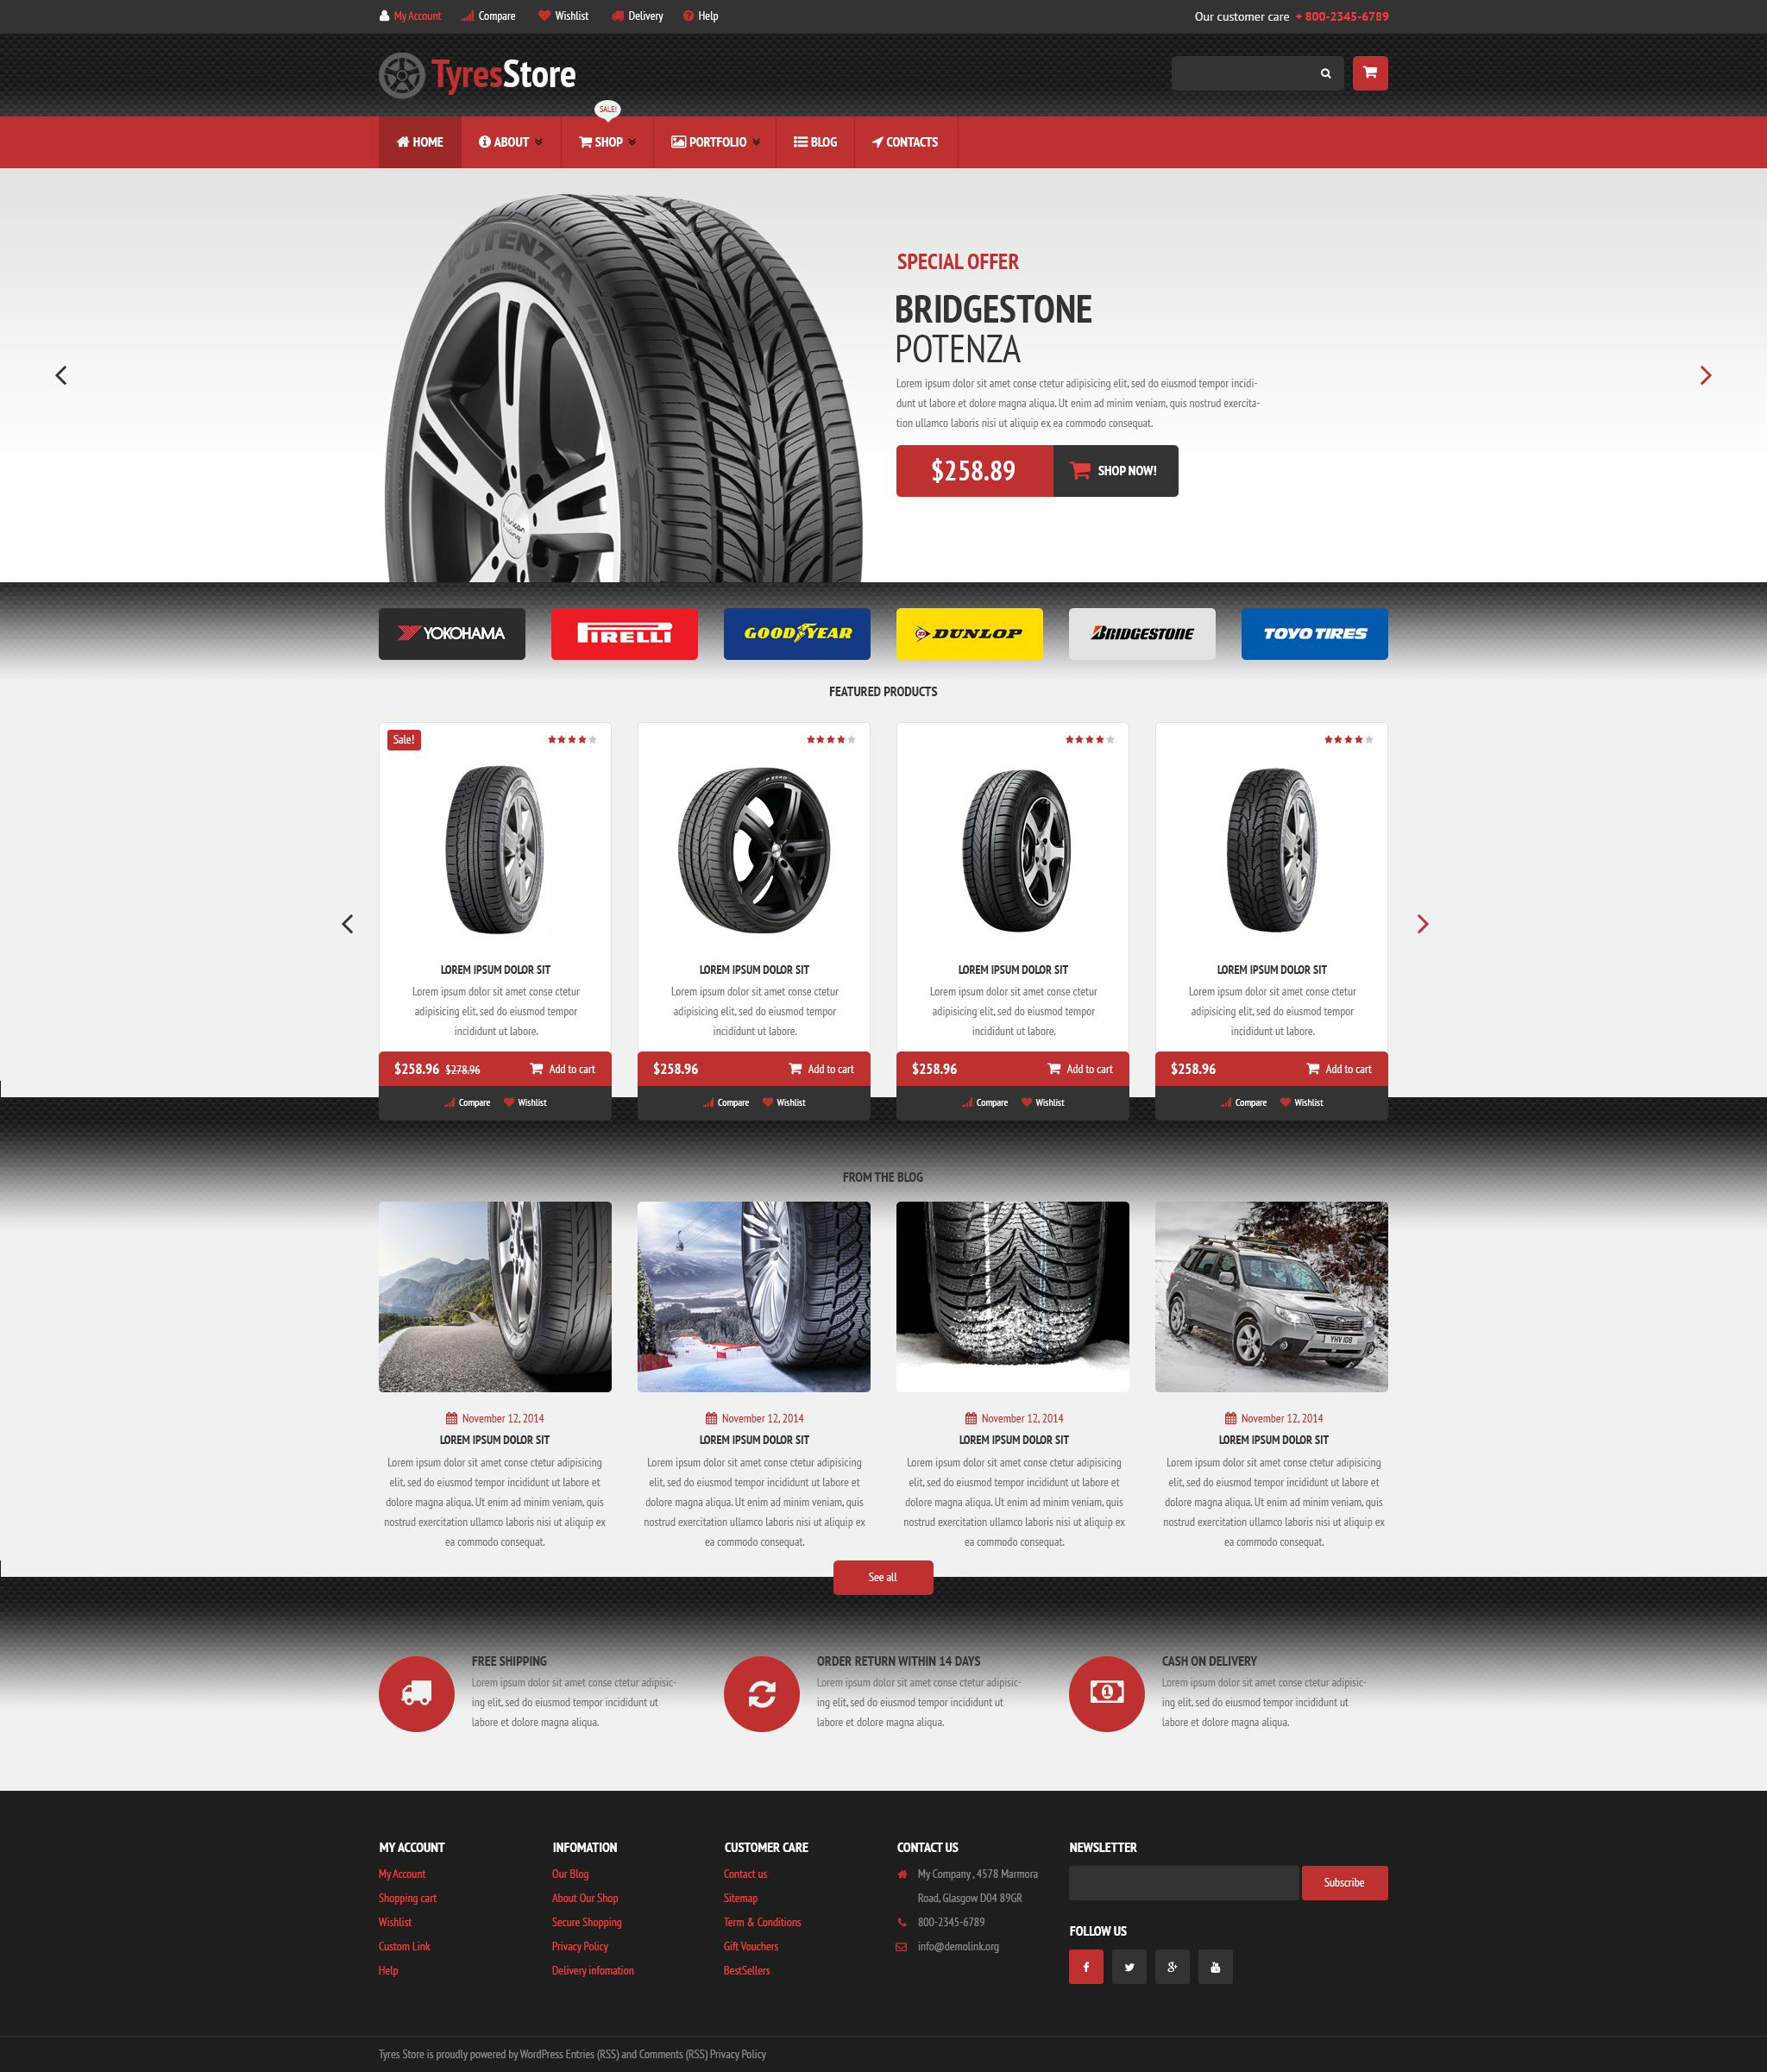 The Tyres Tires & Wheels Online Store WooCommerce Design 53114, one of the best WooCommerce themes of its kind (cars, most popular), also known as tyres Tires & Wheels online store WooCommerce template, car WooCommerce template, automobile engine WooCommerce template, valves WooCommerce template, spares WooCommerce template, parts WooCommerce template, filter WooCommerce template, gauges WooCommerce template, styling WooCommerce template, shop WooCommerce template, shopping cart WooCommerce template, speed and related with tyres Tires & Wheels online store, car, automobile engine, valves, spares, parts, filter, gauges, styling, shop, shopping cart, speed, etc.